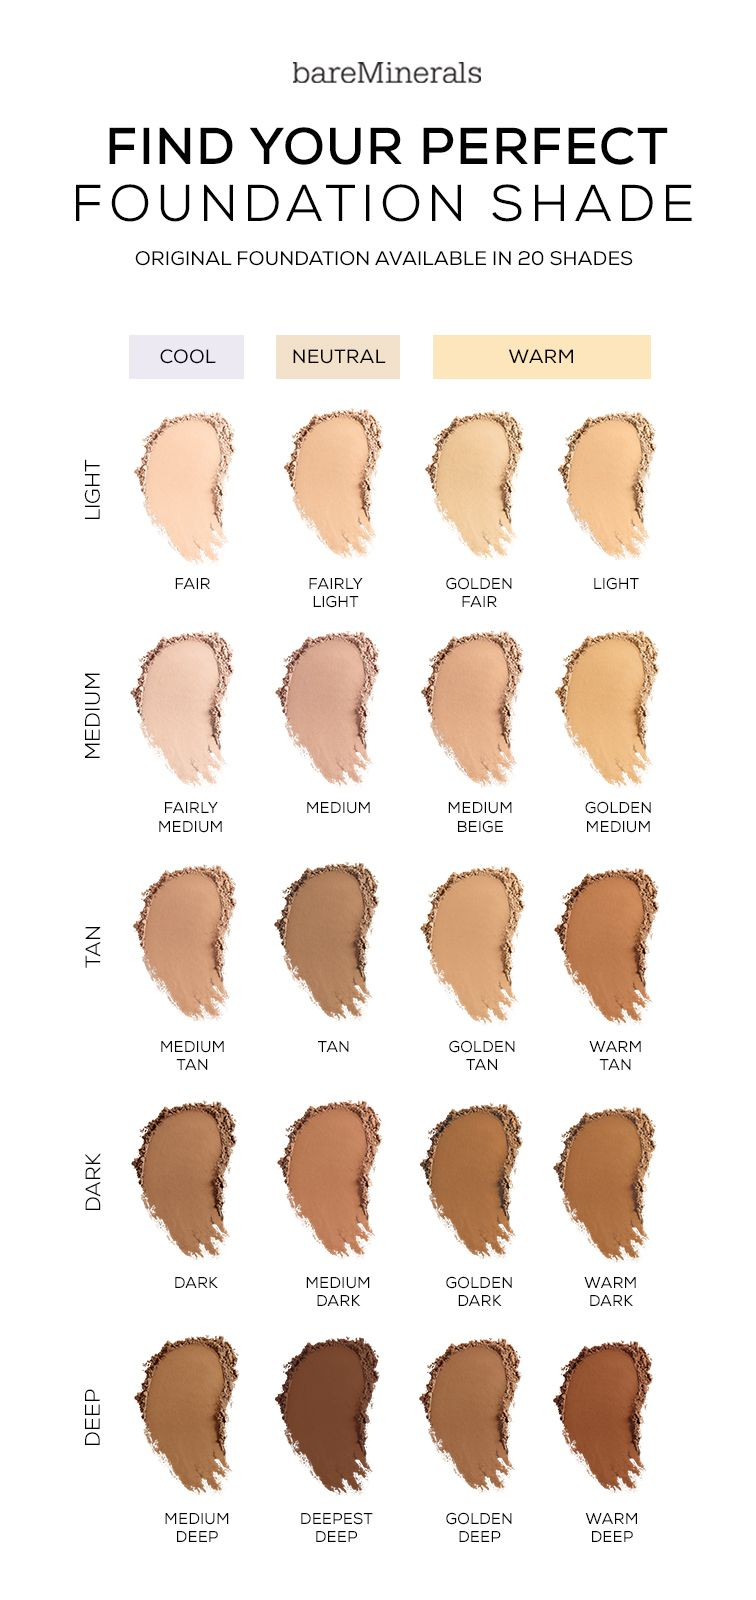 Original Foundation Gives You A Flawless Coverage With A No Makeup Look And Feel That Lasts Up To 8 Hours When Skin Makeup Makeup Skin Care Foundation Shades